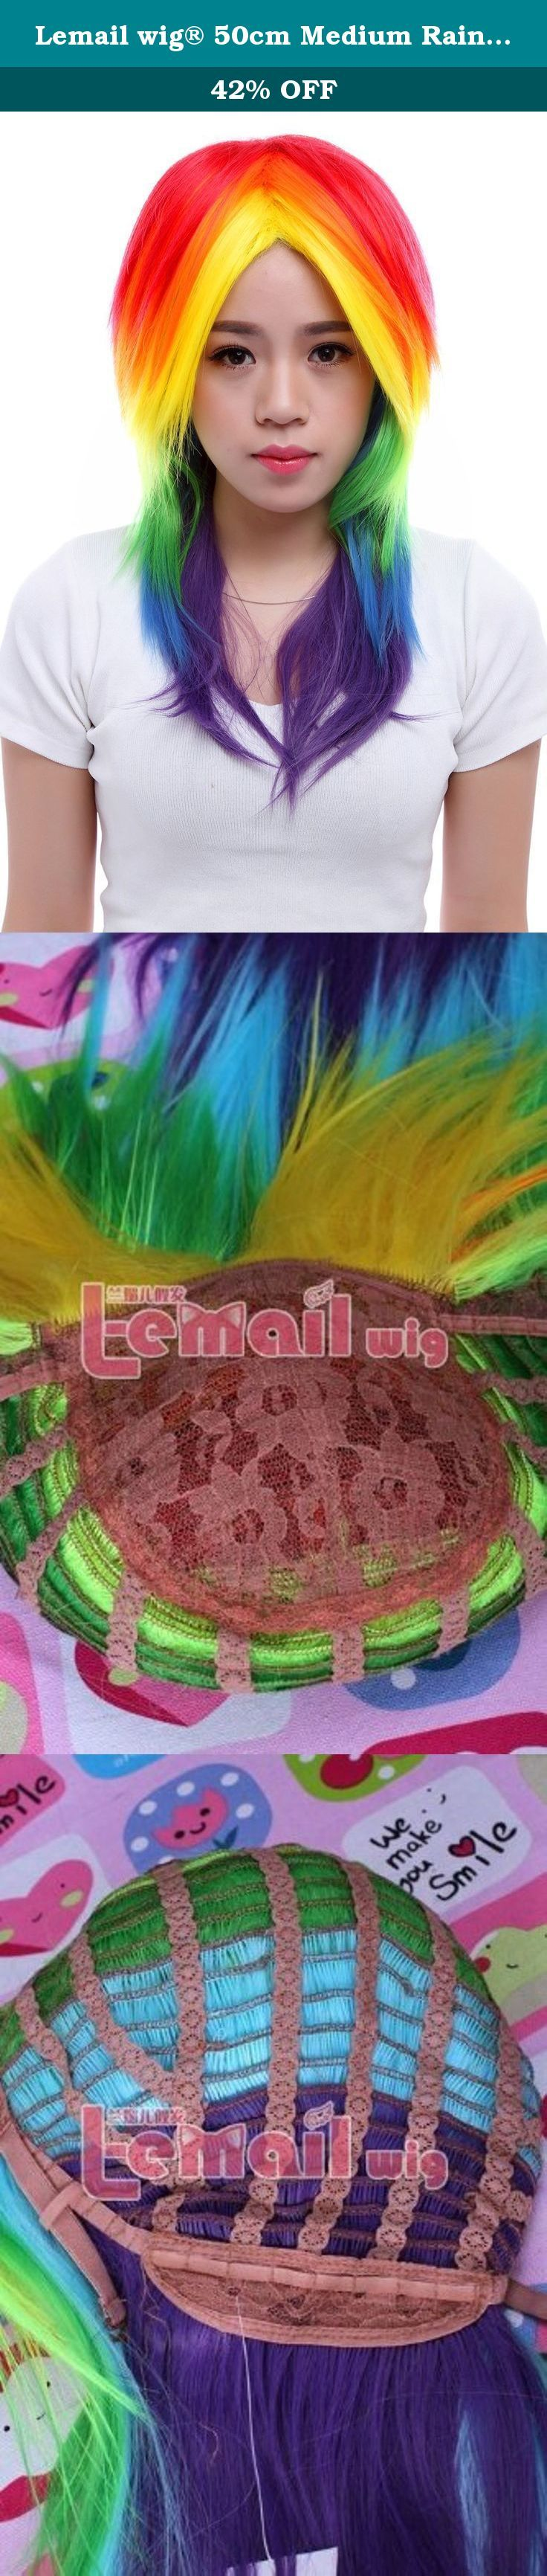 Lemail wig® 50cm Medium Rainbow Dash Colorful Costumes Cosplay Hair Wig. wig length :50cm/19.68inch G.W.:240g Material: heat-resistant fiber Color: Rainbow color 1.The size is adjustable and no pins or tape should be required. It should be fit on most people. All you should need to do is adjust the hooks inside the cap to the correct size to suit your head. 2.Please be aware that colors might look slightly different in person due to camera quality and monitor settings. Stock photos are…